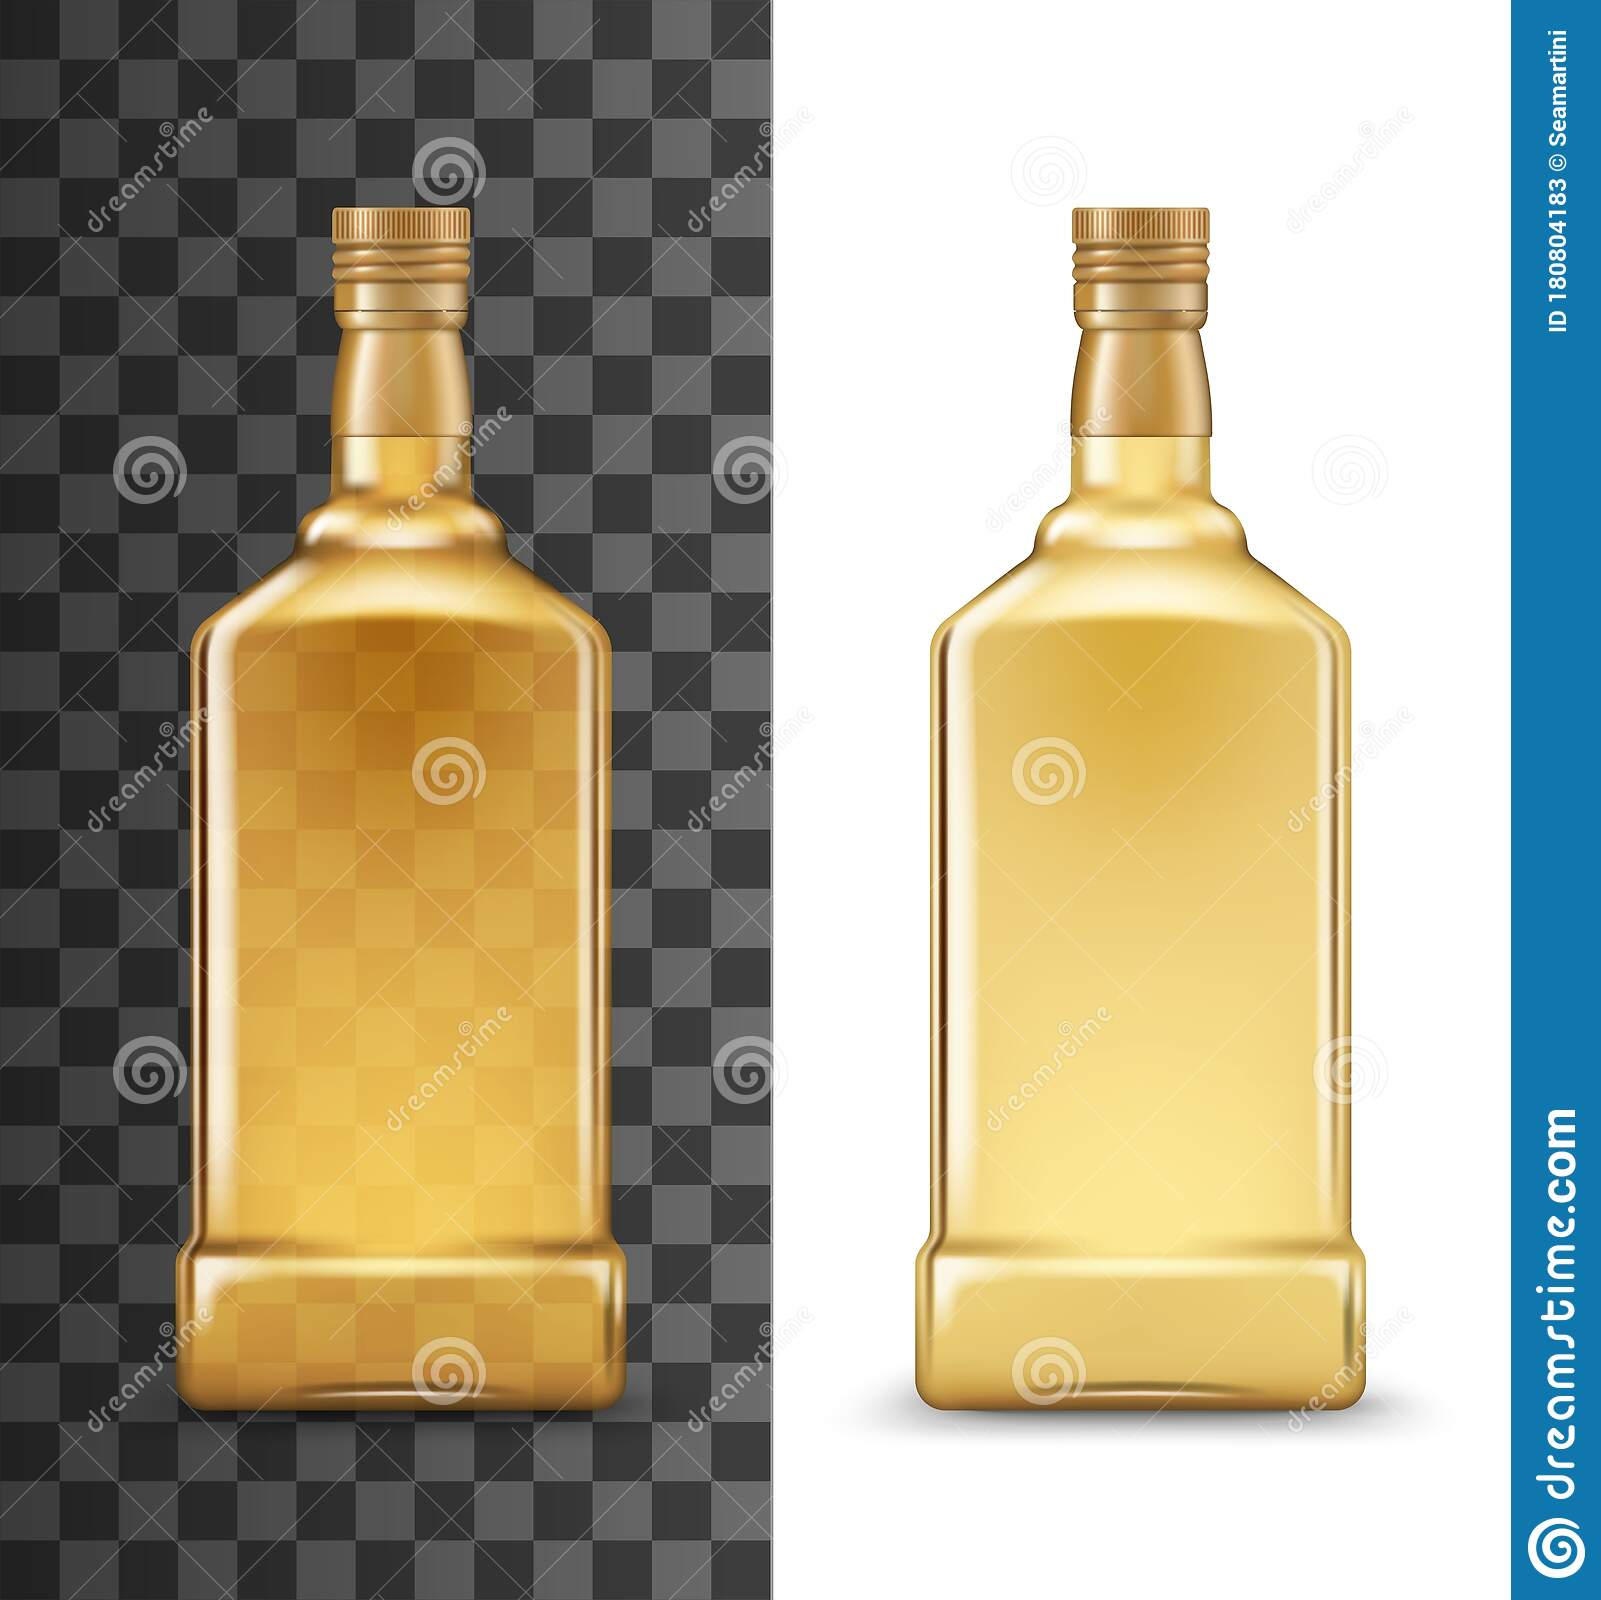 Alcohol Drink Bottle Tequila Or Whiskey Mockup Stock Vector Illustration Of Brand Whiskey 180804183,Liberty Quarter Dollar Value In India